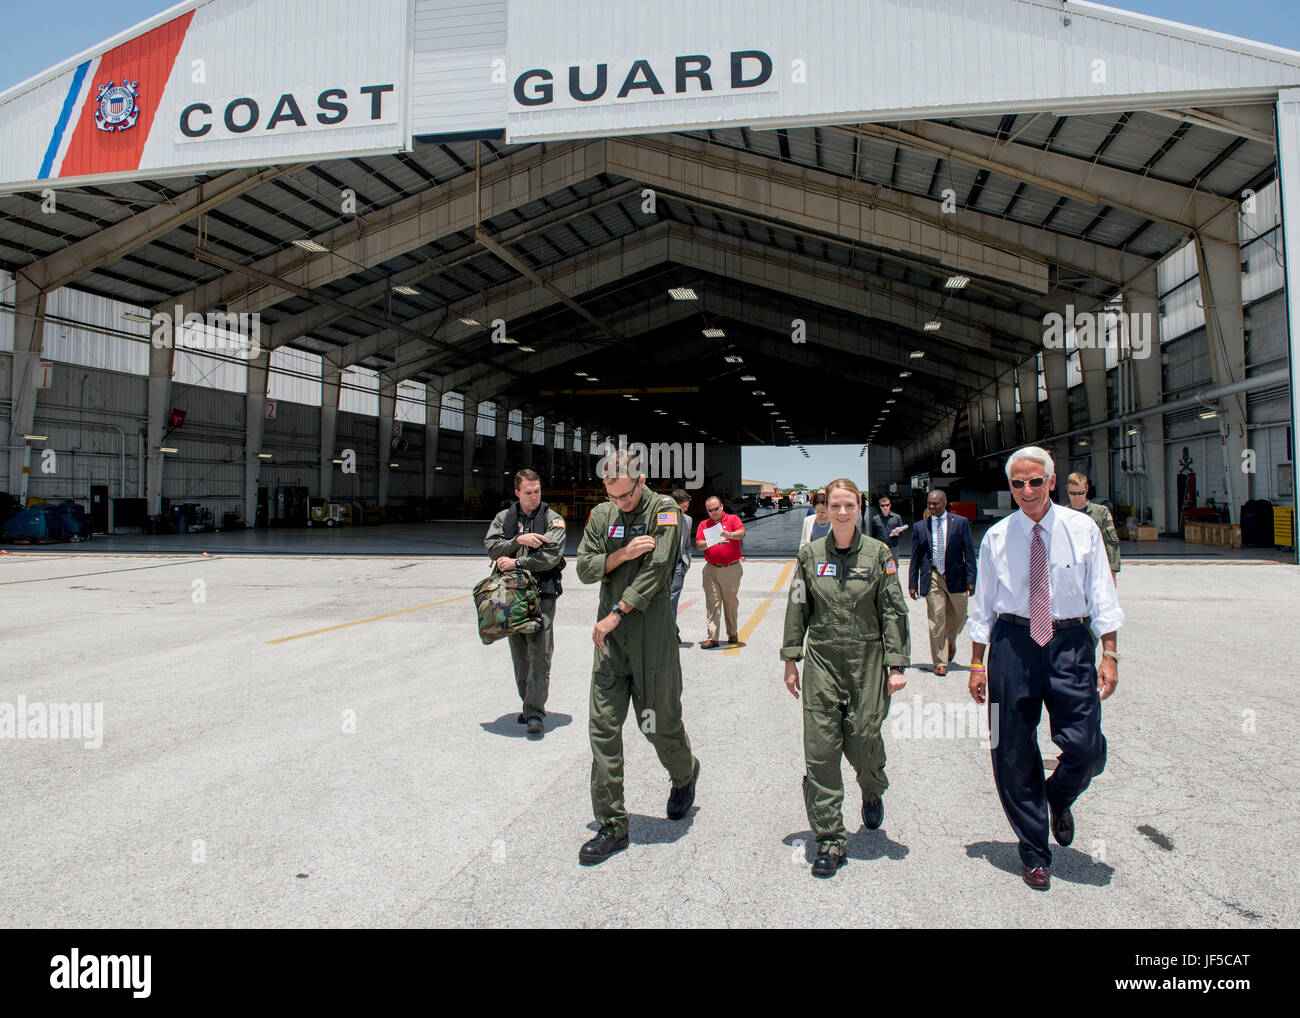 Congressman Charlie Crist, U.S. Representative for Florida's 13th District, right, speaks with Air Station Clearwater - Stock Image